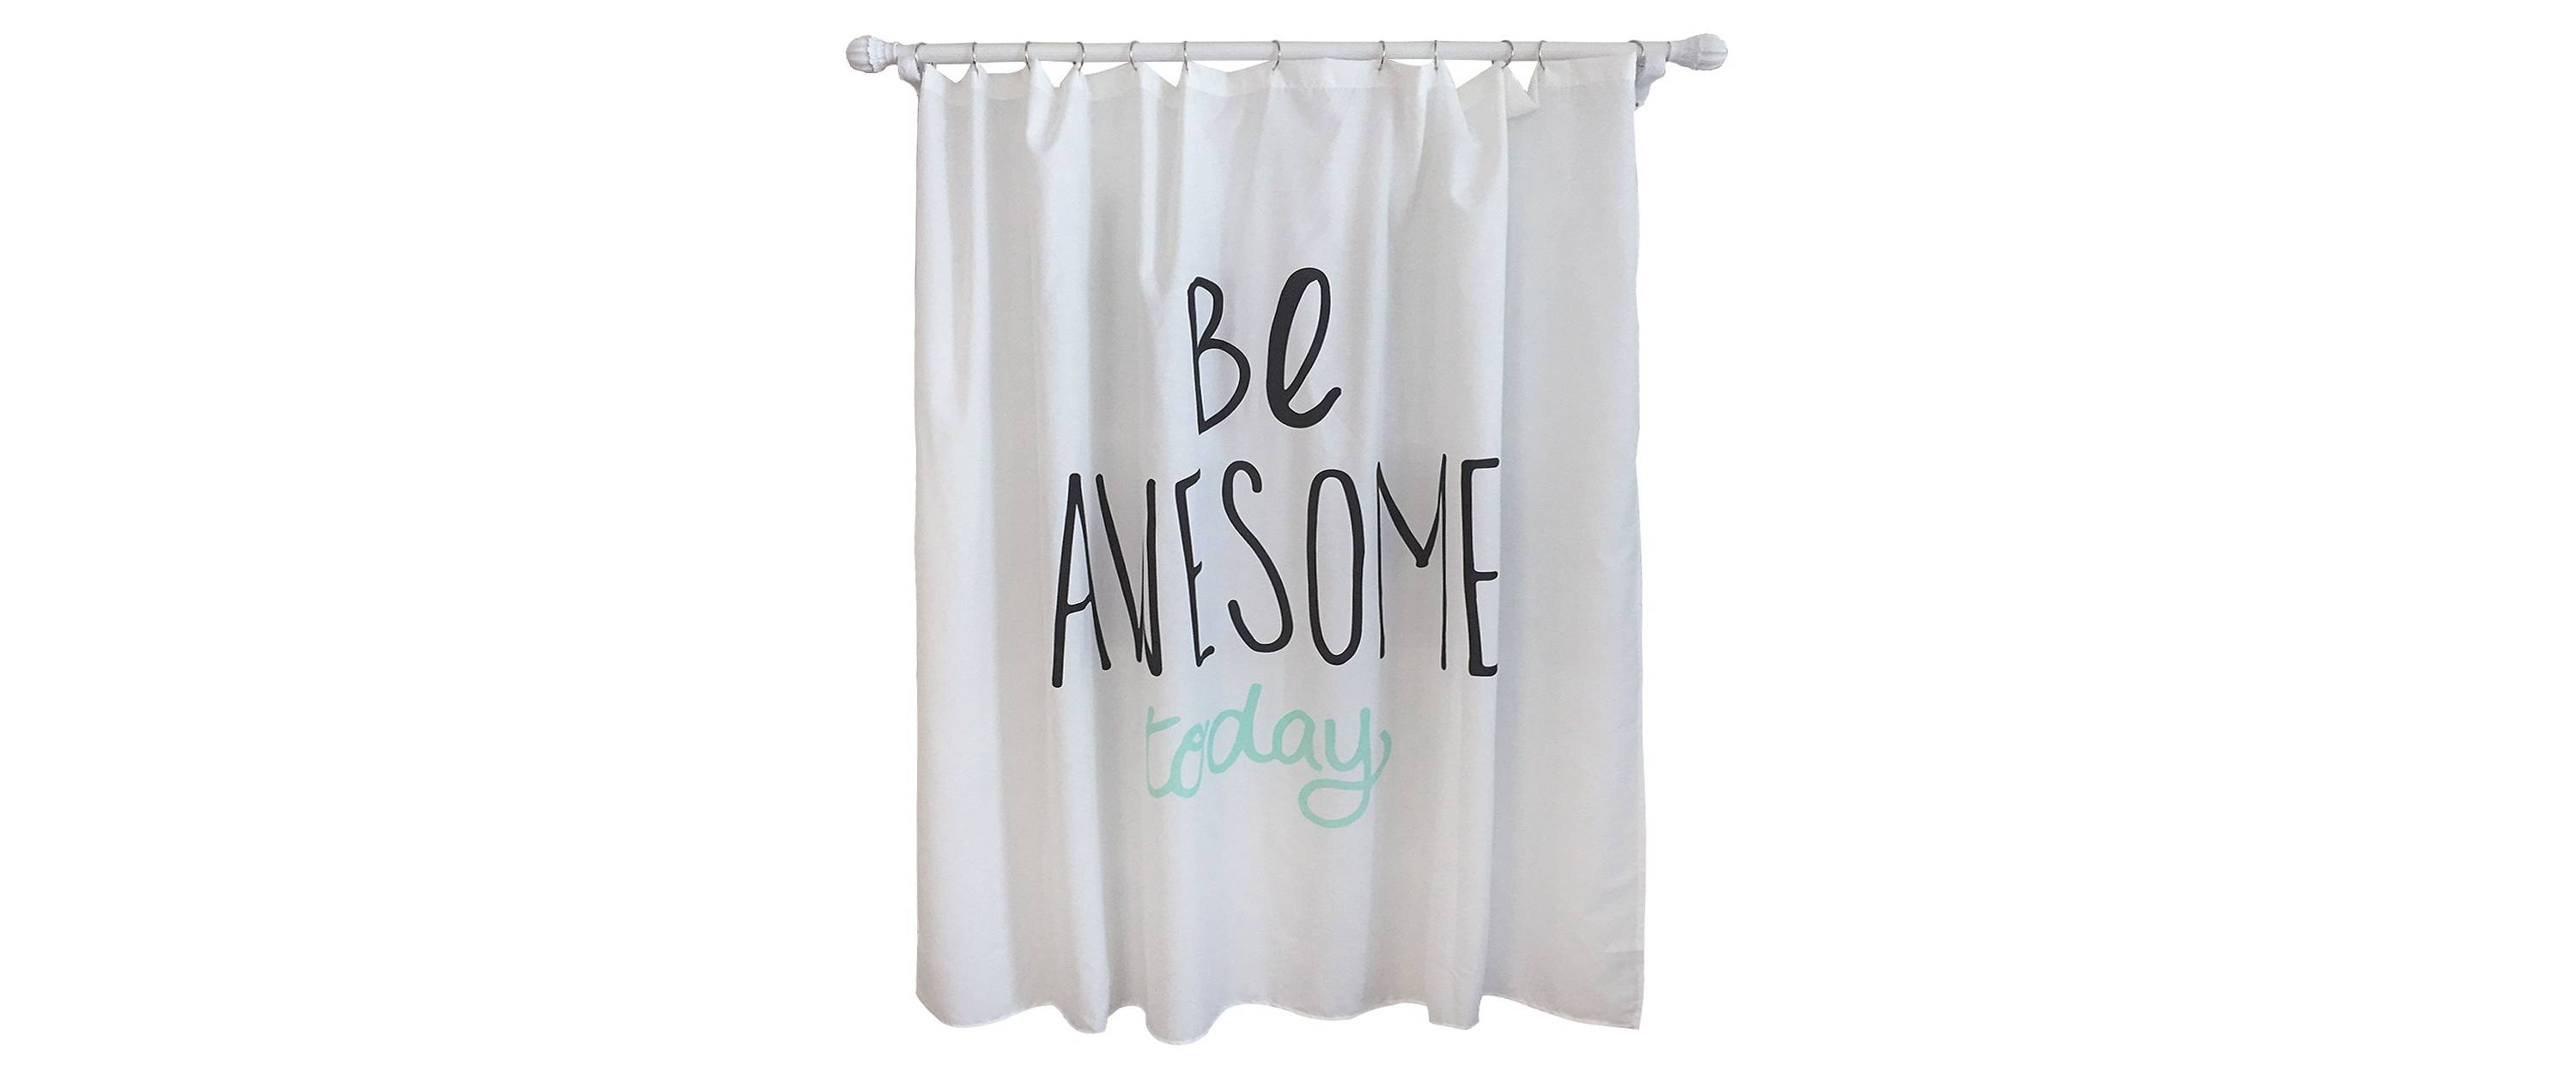 turquoise and black shower curtain. Be Awesome Today Shower Curtain Our New  10 Curtains You Might Like The